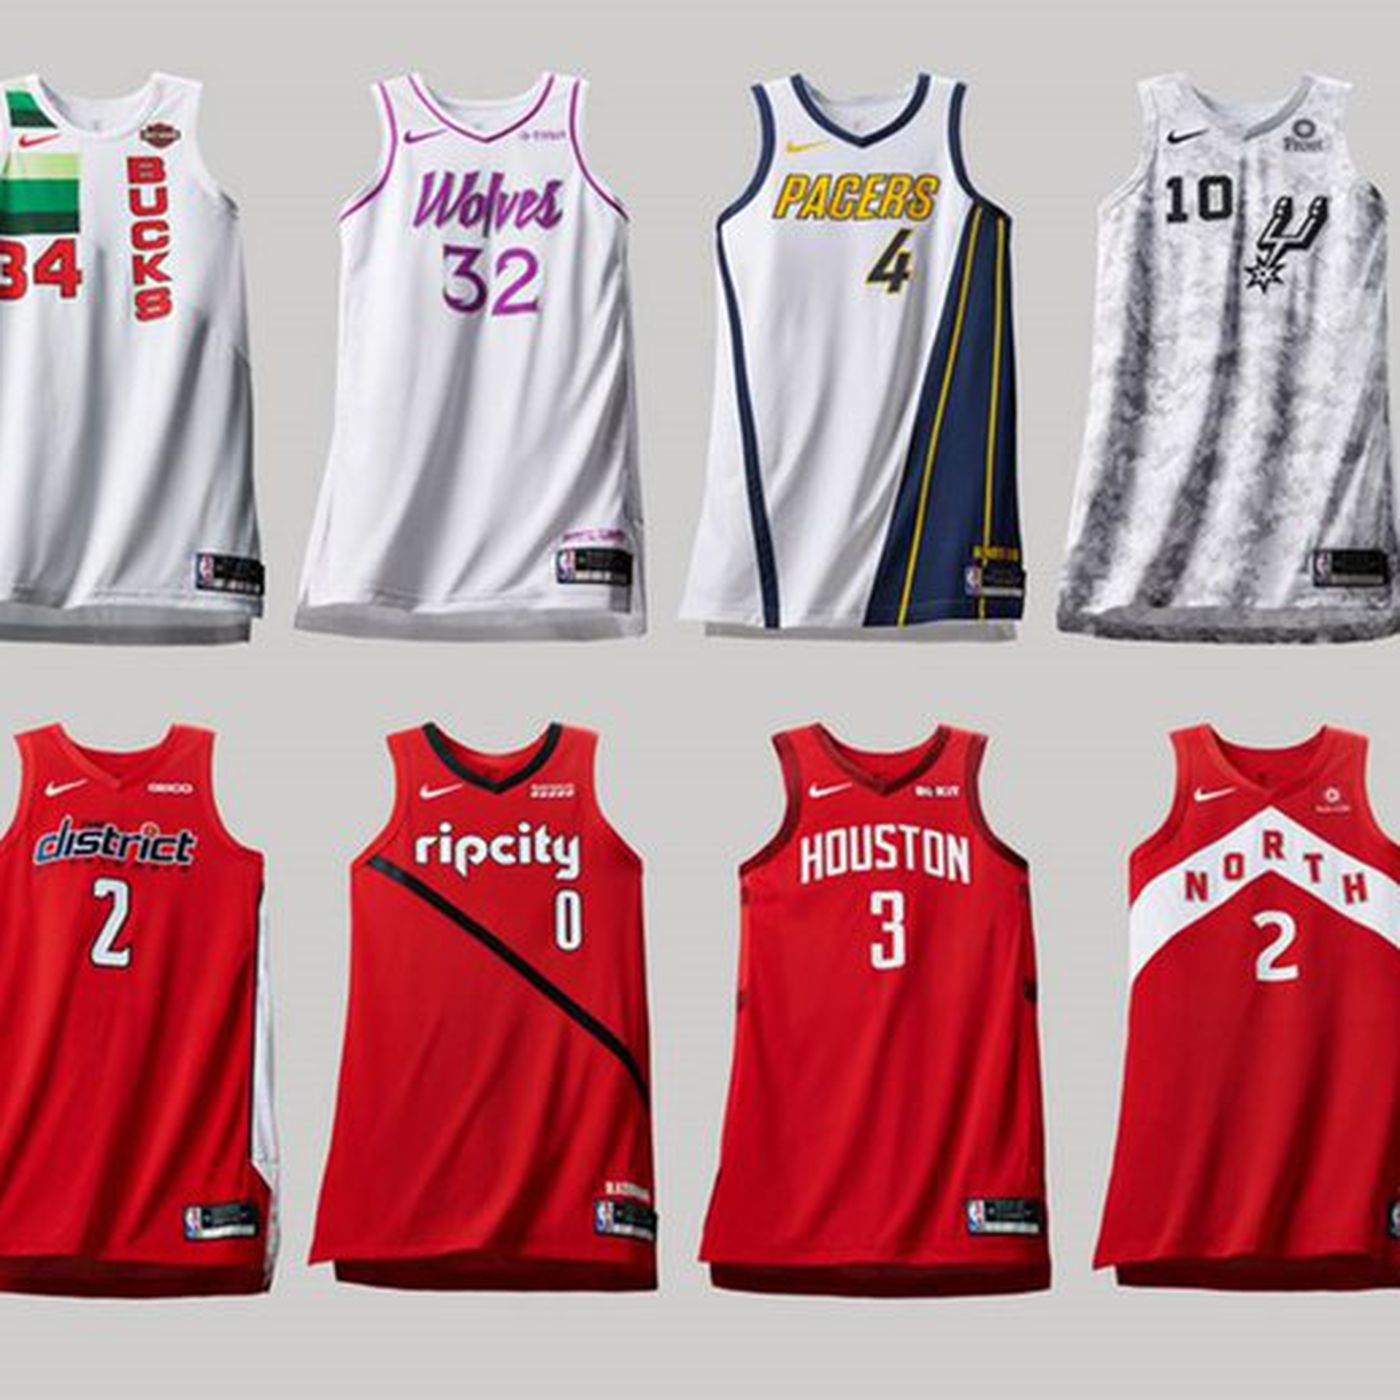 Nike s NBA Christmas jerseys aren t special anymore ee3a7035c